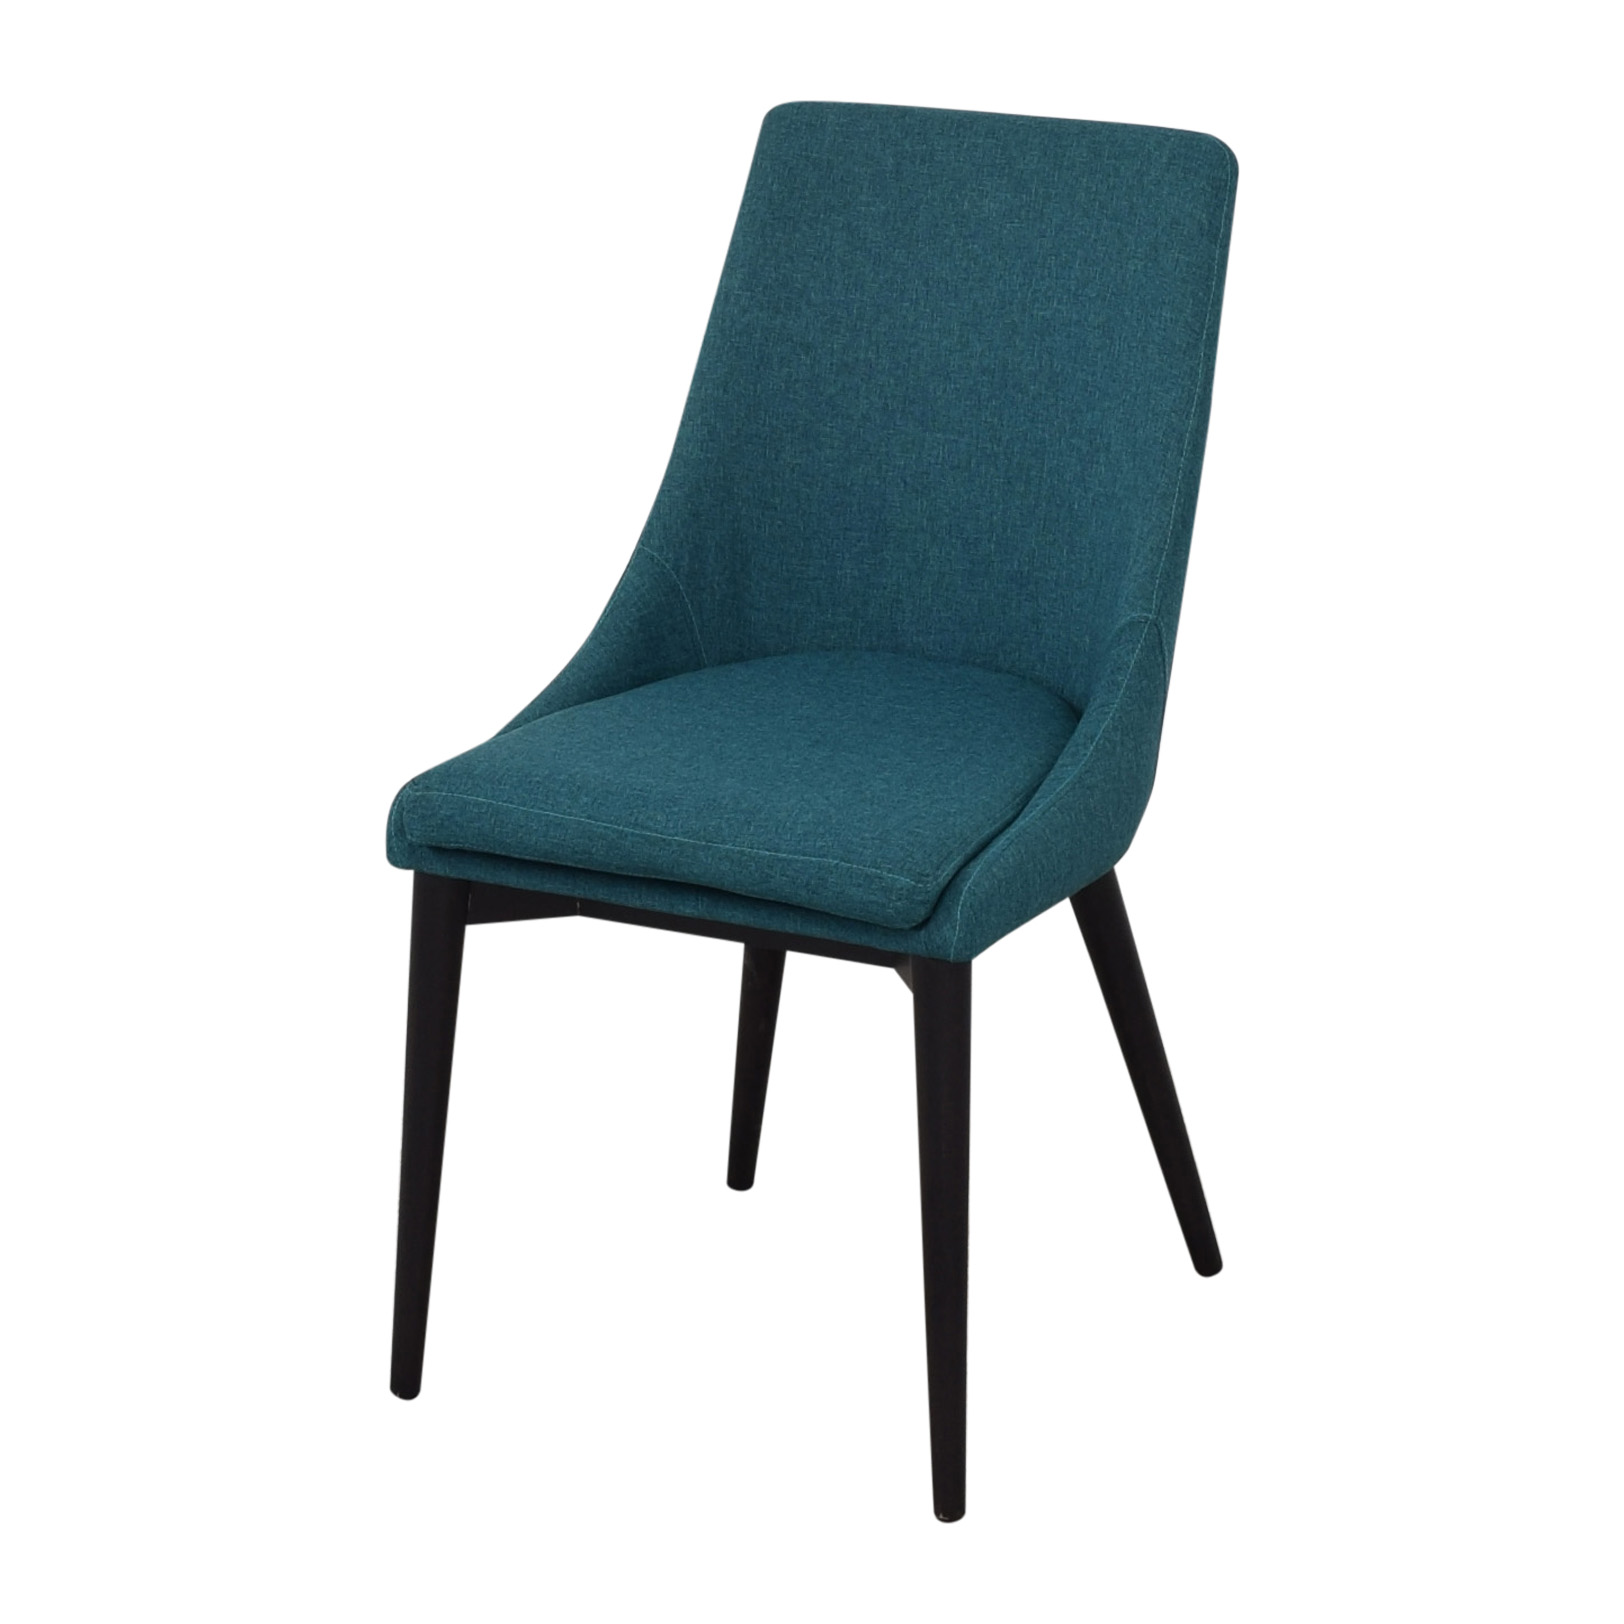 Modway Modway Viscount Dining Chairs second hand